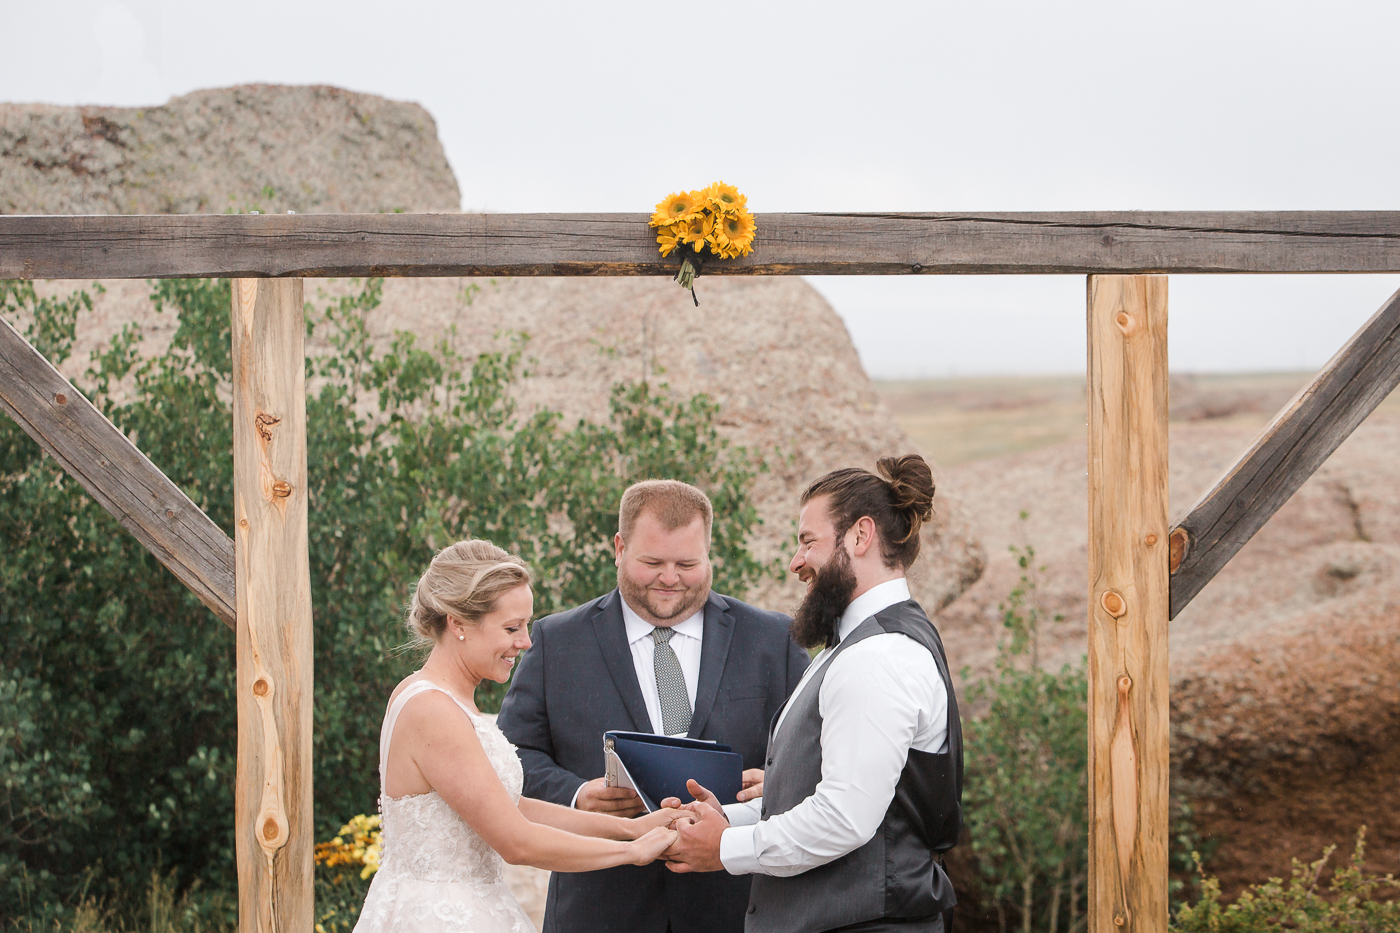 Rustic Summer Wyoming Wedding by Megan Lee Photography